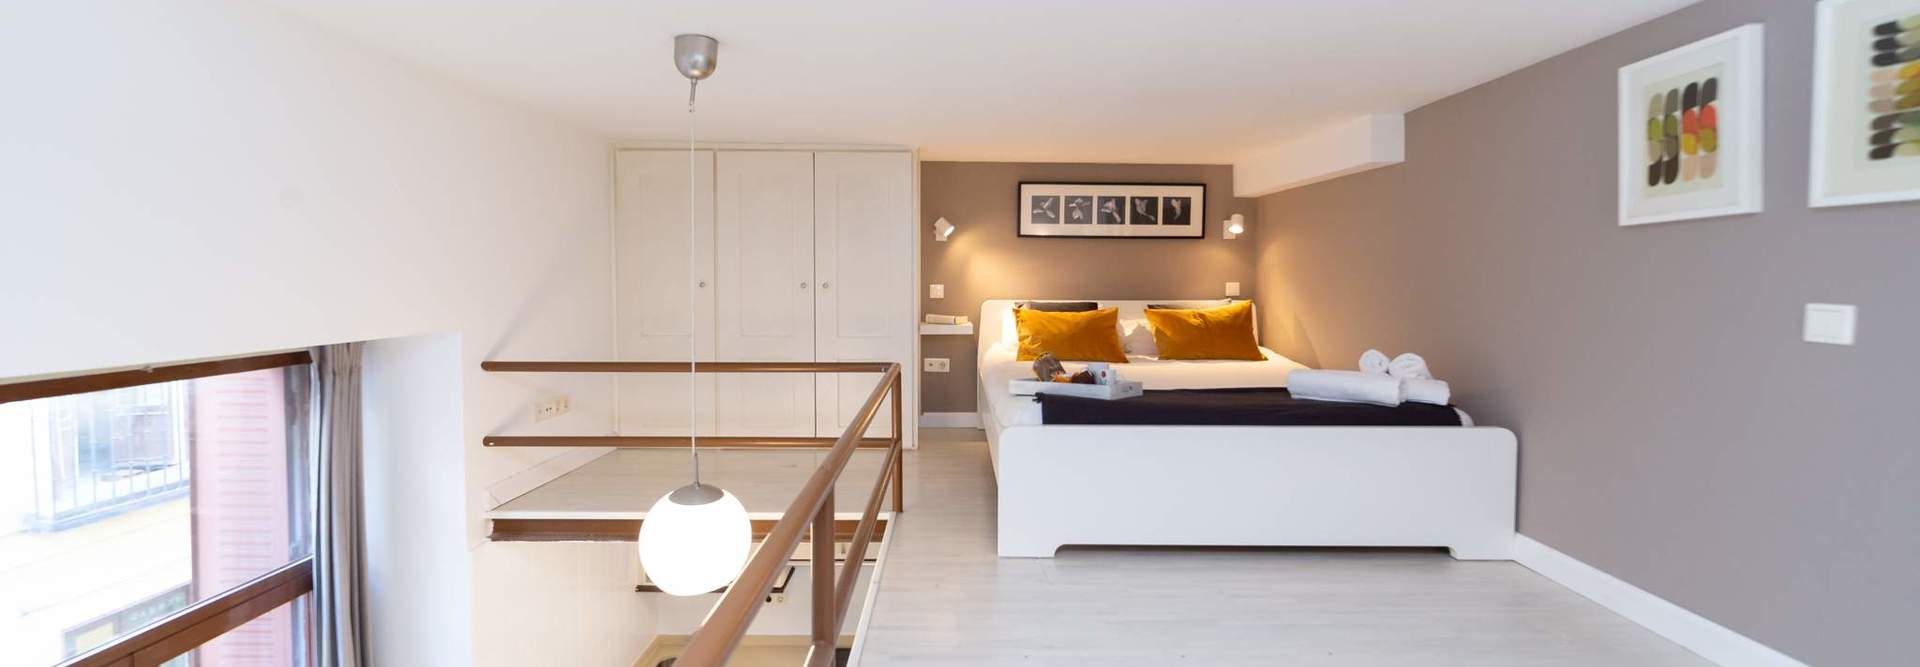 Home alquiler apartamentos madrid mad4rent 15